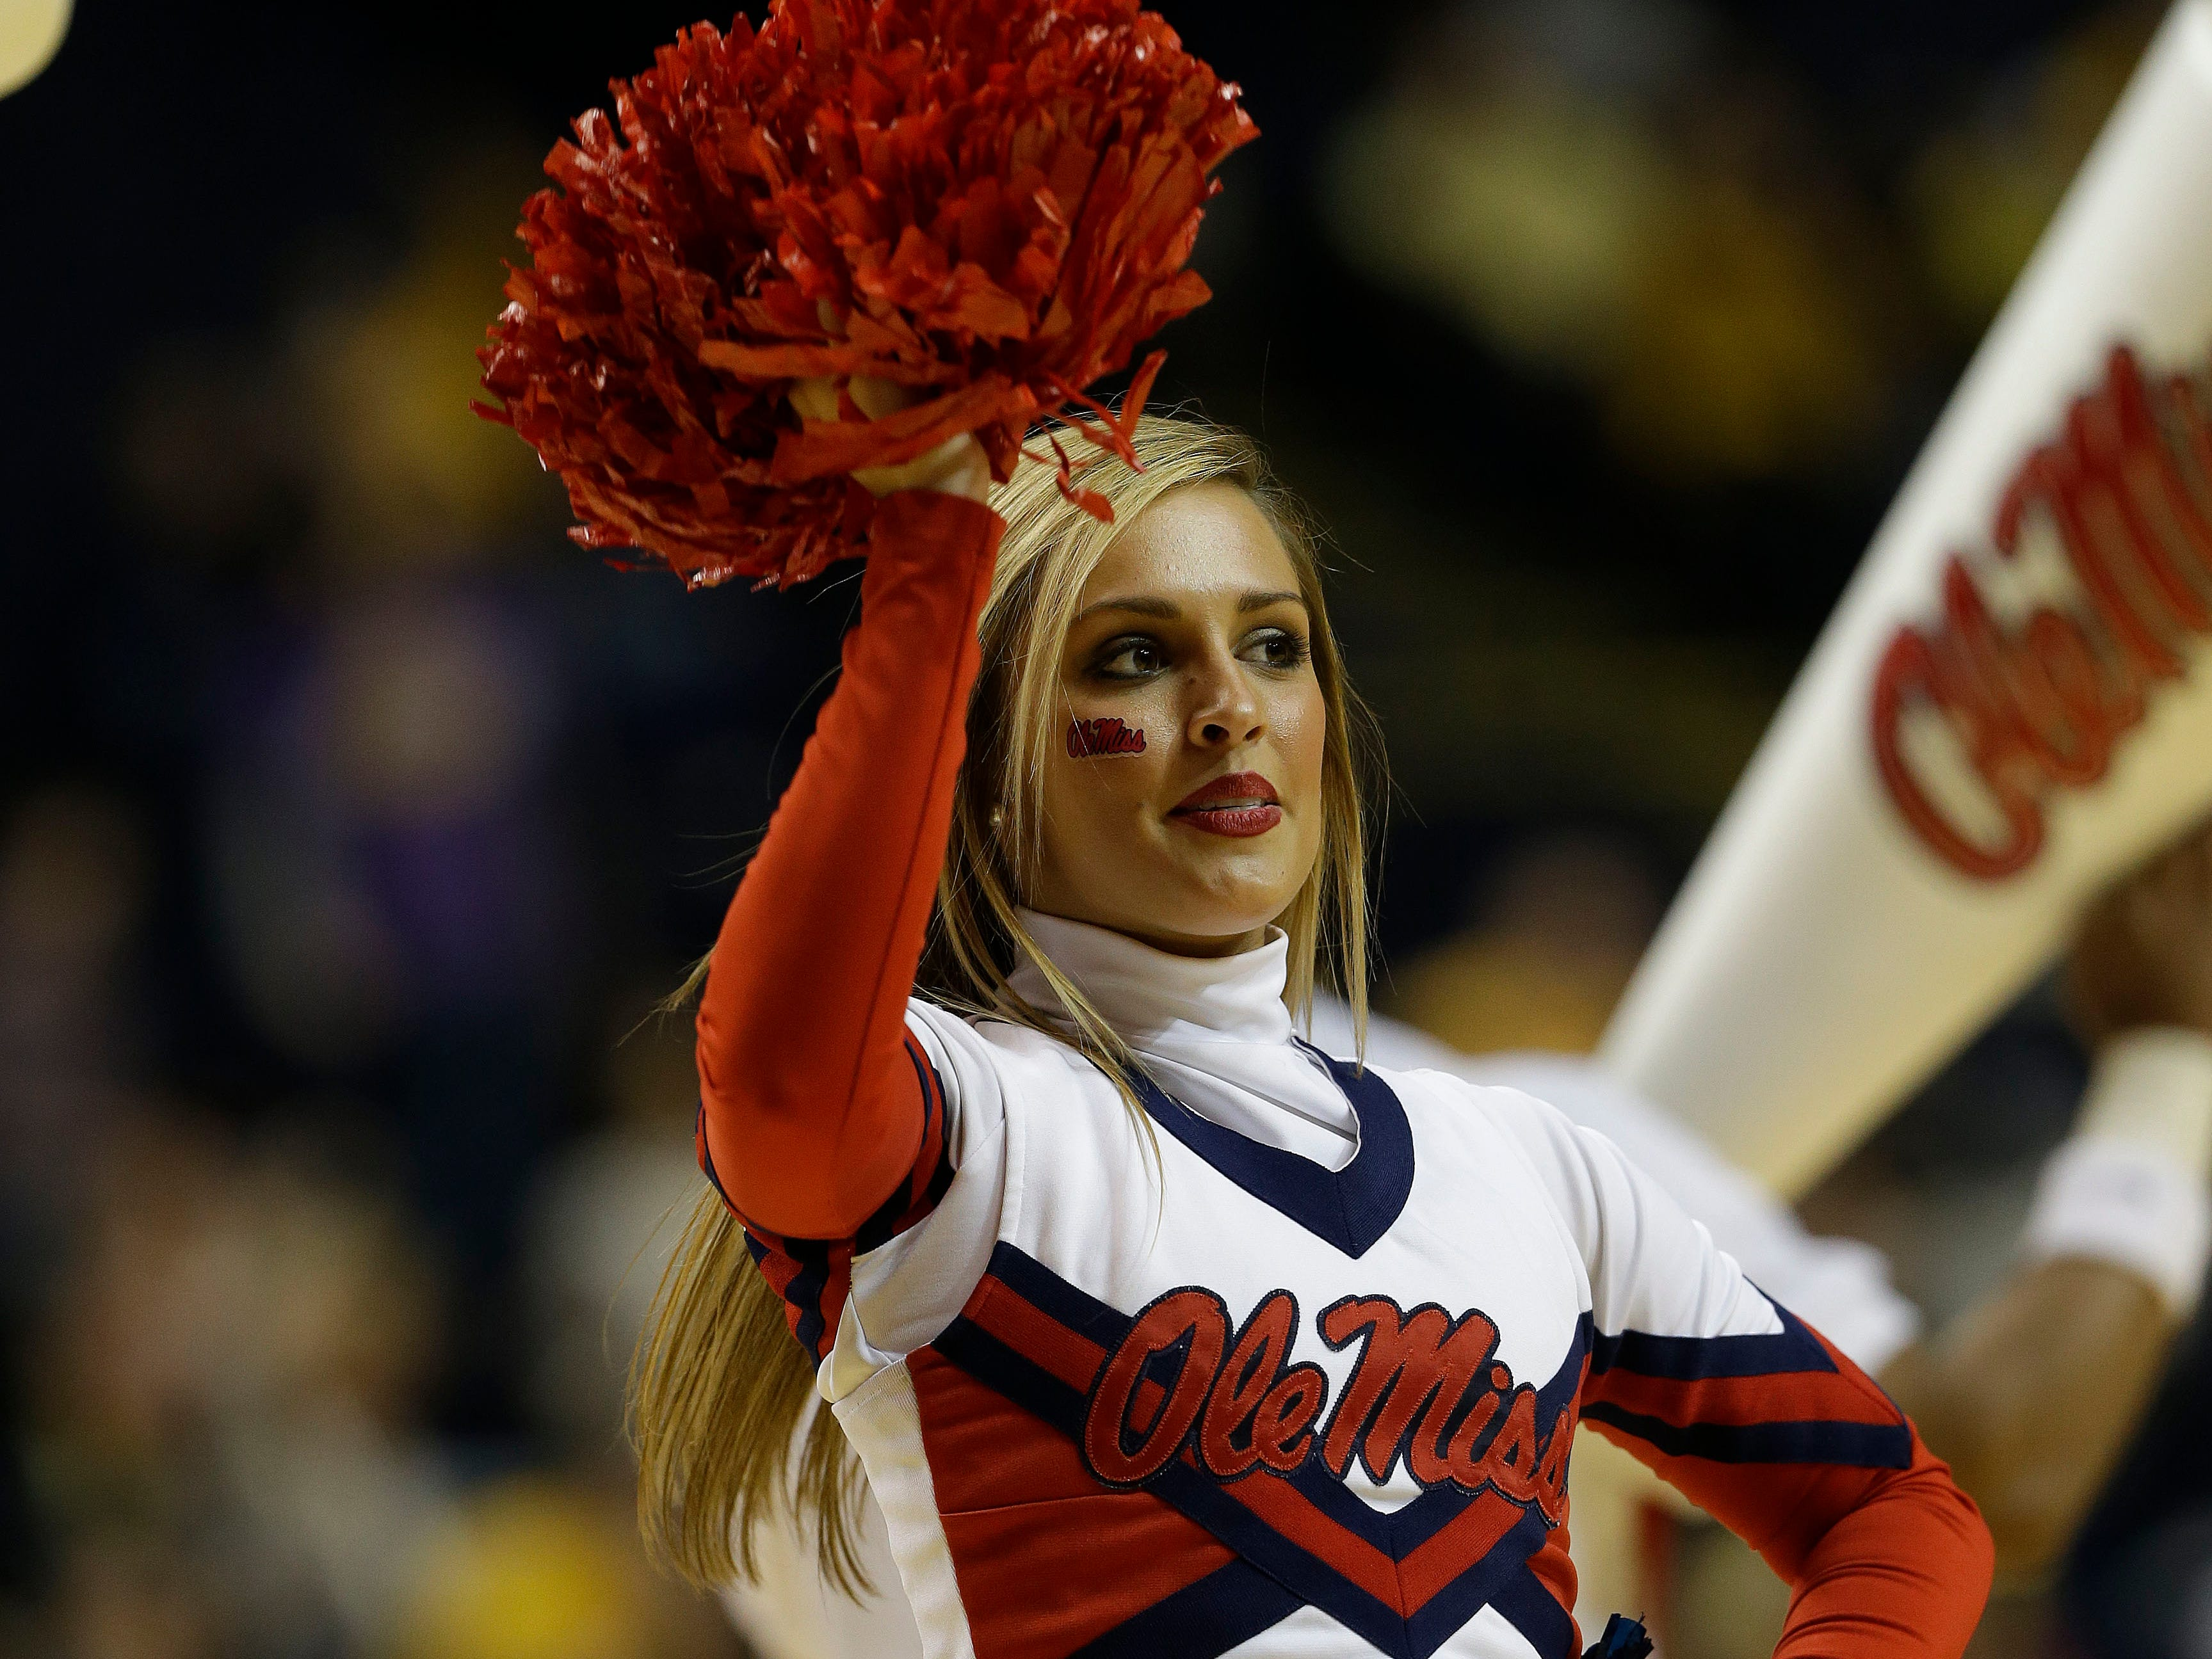 Mississippi cheerleaders perform during the second half of an NCAA college basketball game against Missouri at the Southeastern Conference tournament, Friday, March 15, 2013, in Nashville, Tenn. (AP Photo/Dave Martin)